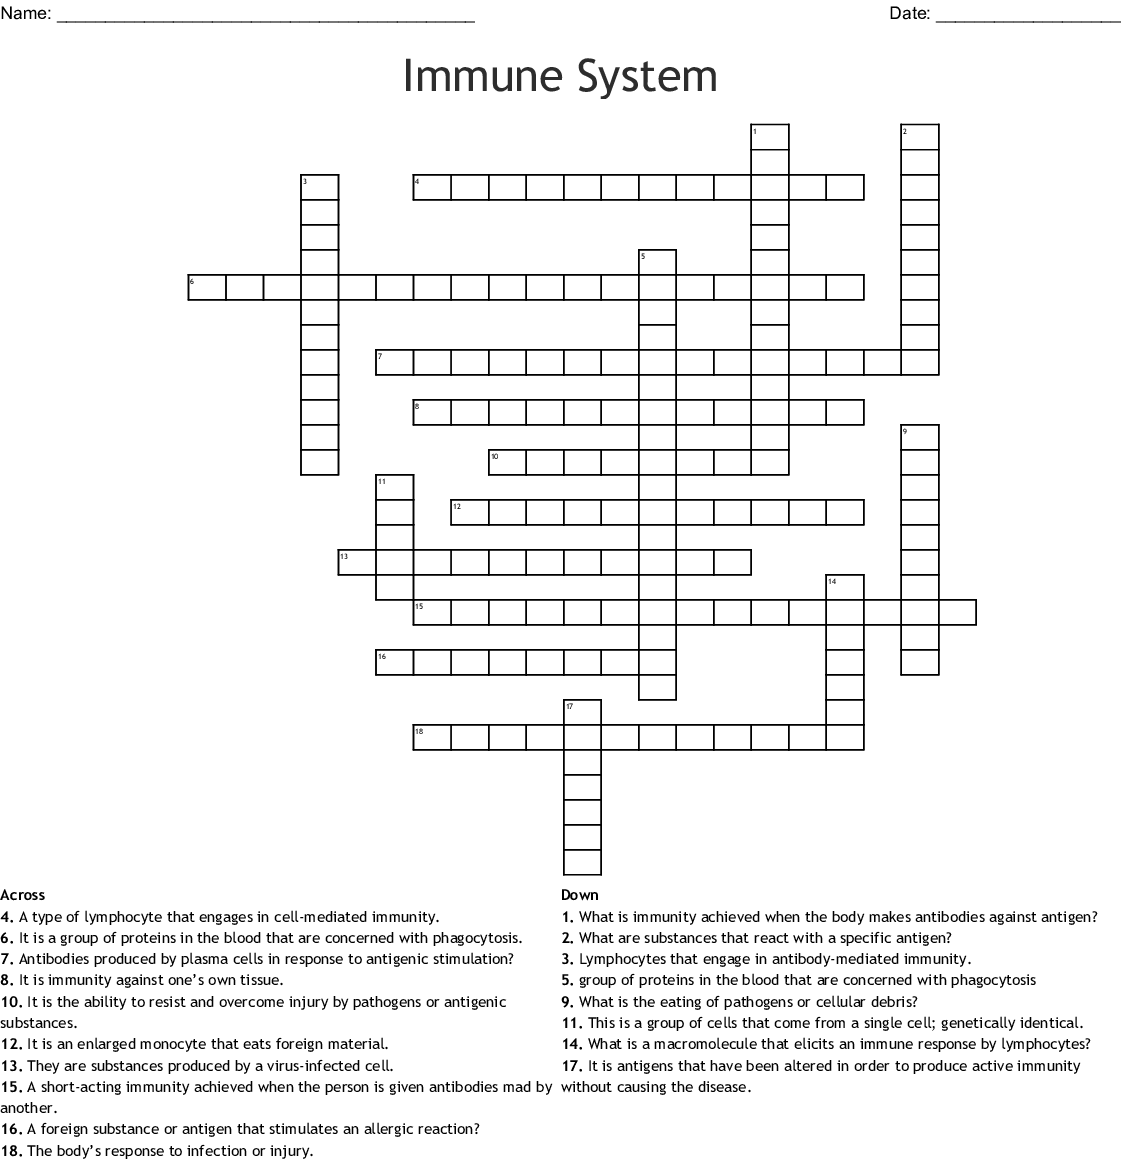 The Immune System Crossword